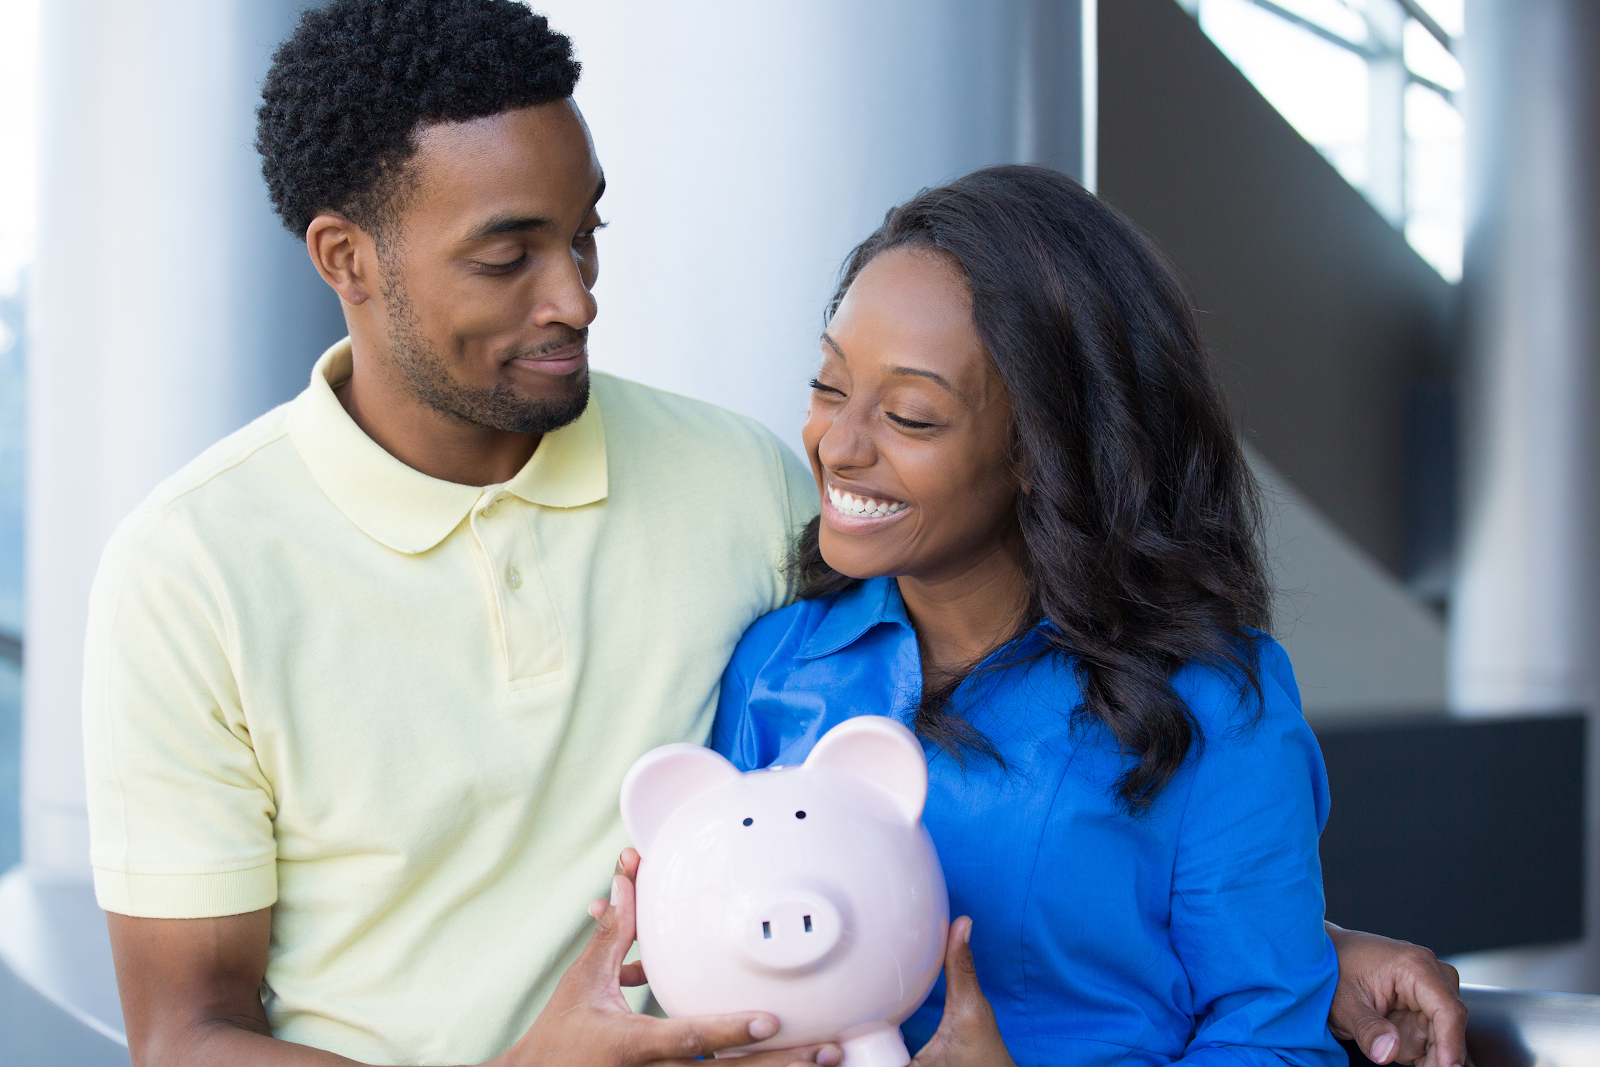 Co-borrowers holding a pink piggy bank together, symbolizing shared financial responsibilities